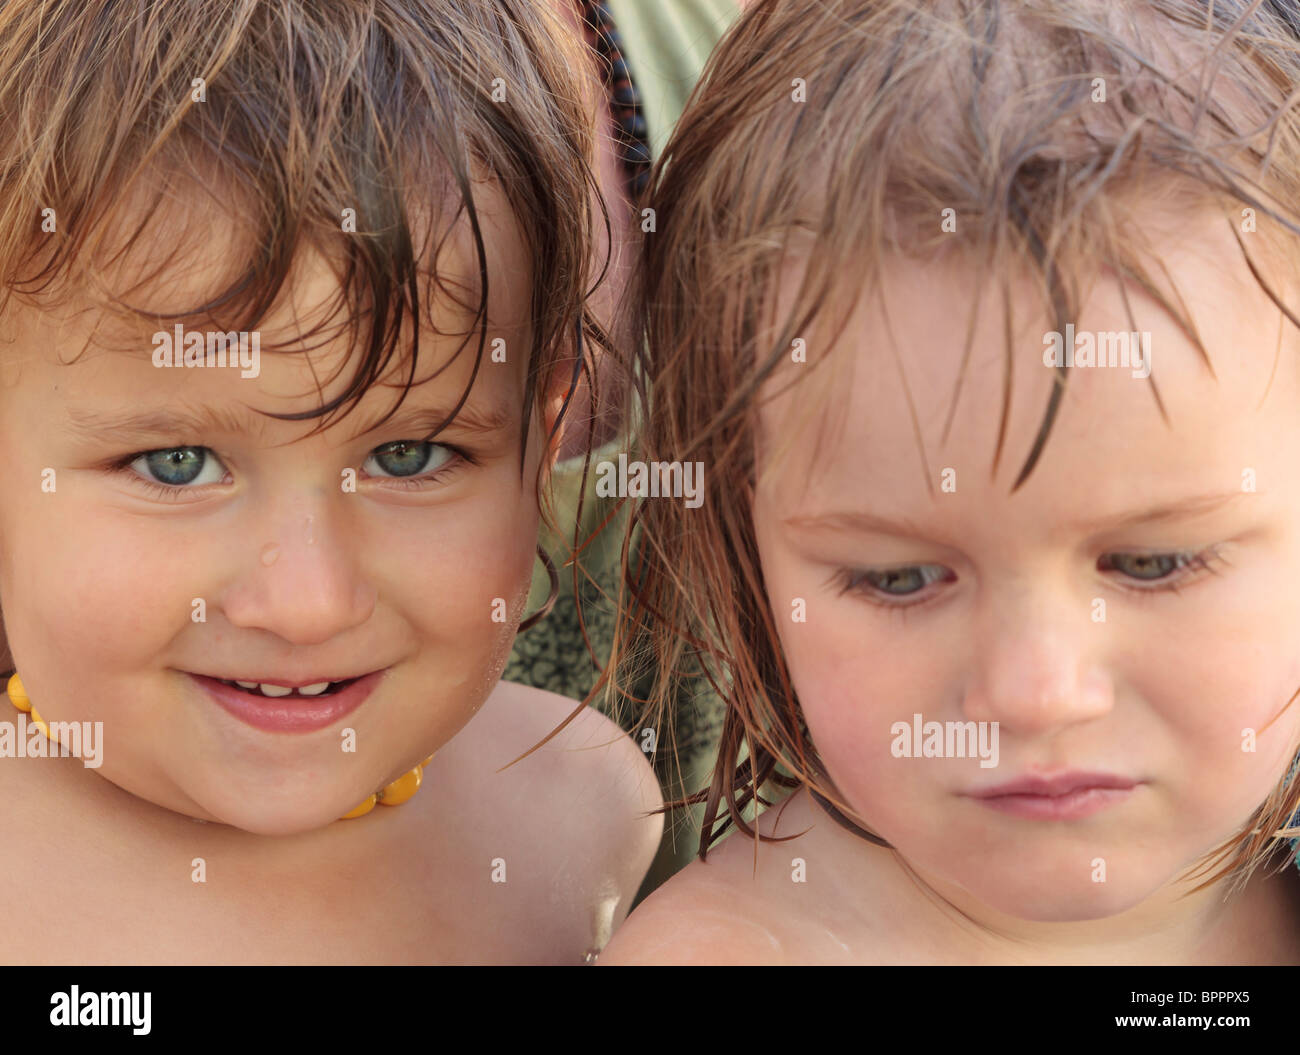 Two two year old girls, one happy, one sad. - Stock Image